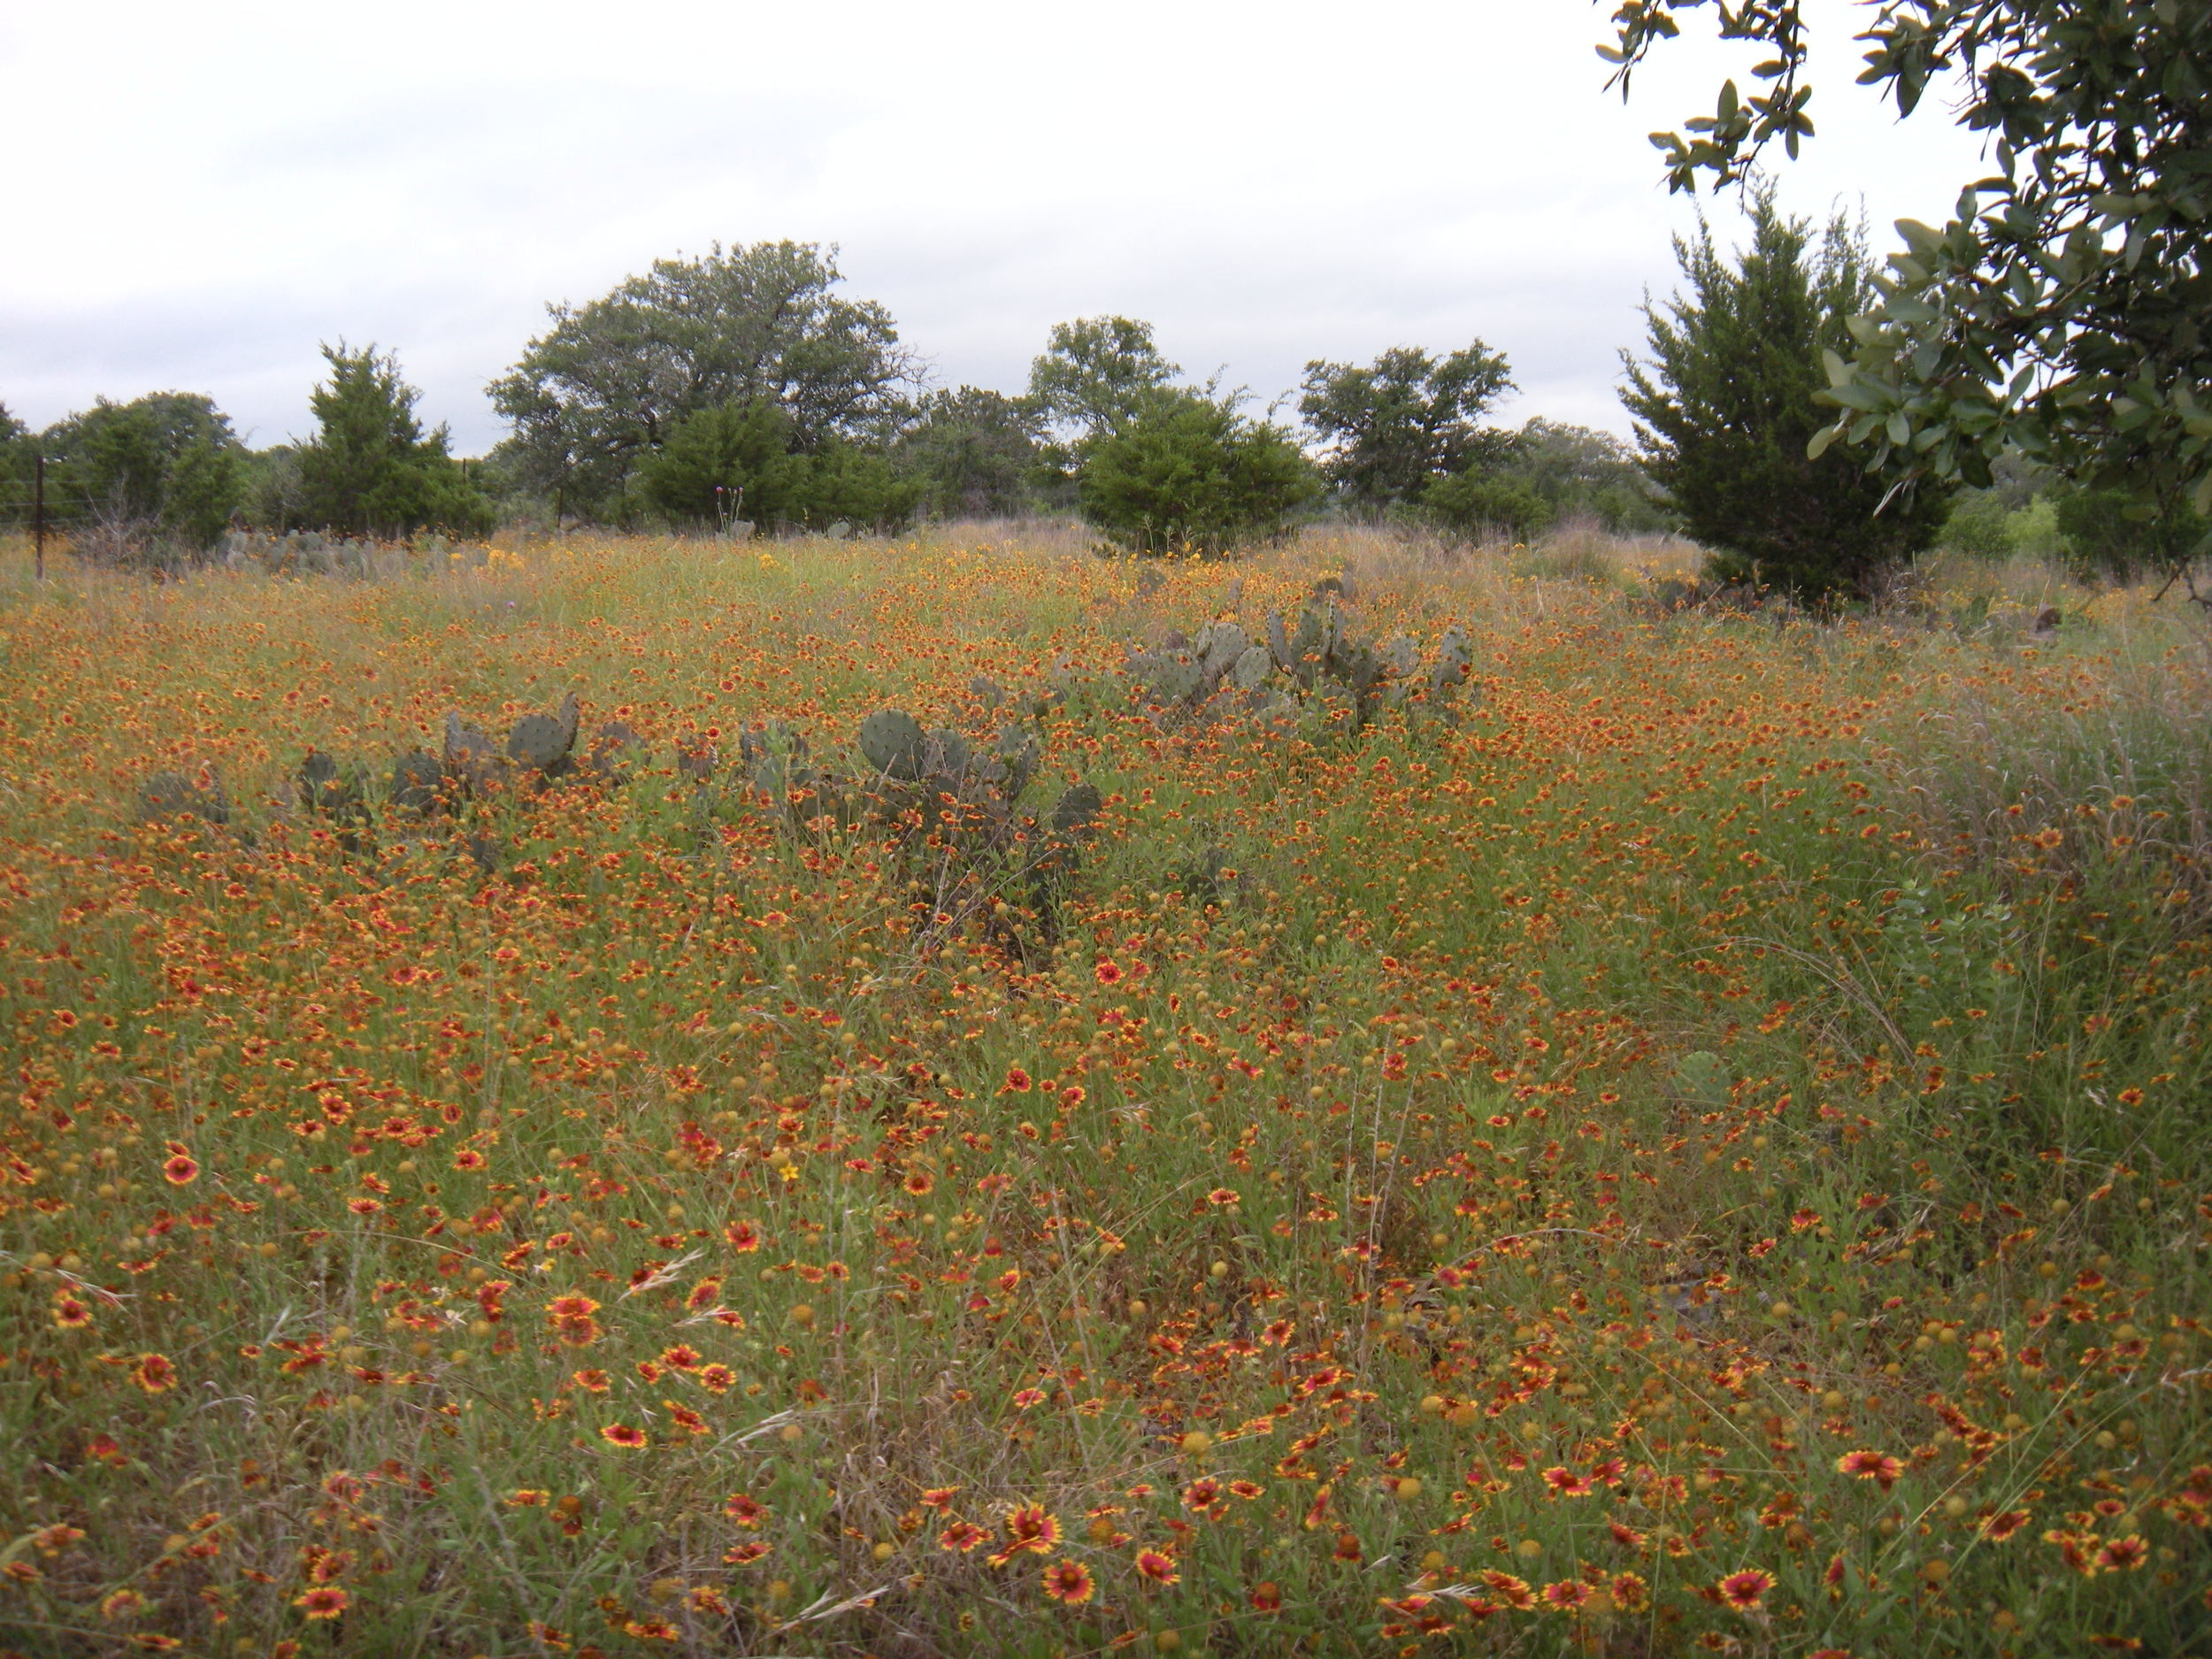 This field of wildflowers is right across the street from our house.  This part of Texas is beautiful this time of year.